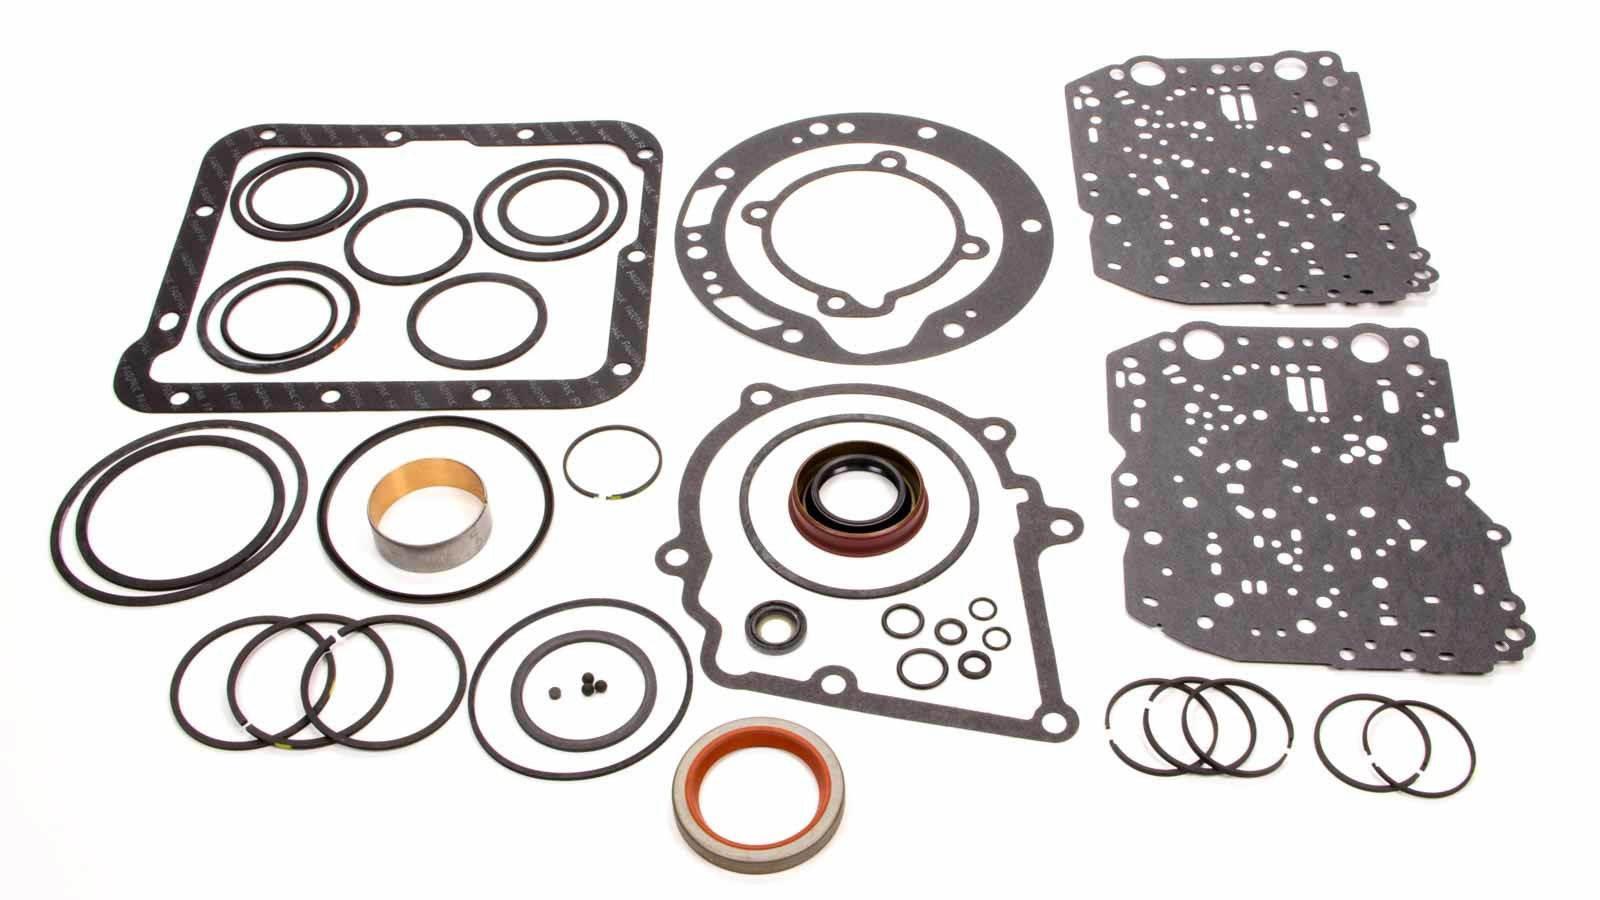 528700 Tci Trans Racing Overhaul Kit Ford C-4 70-Up